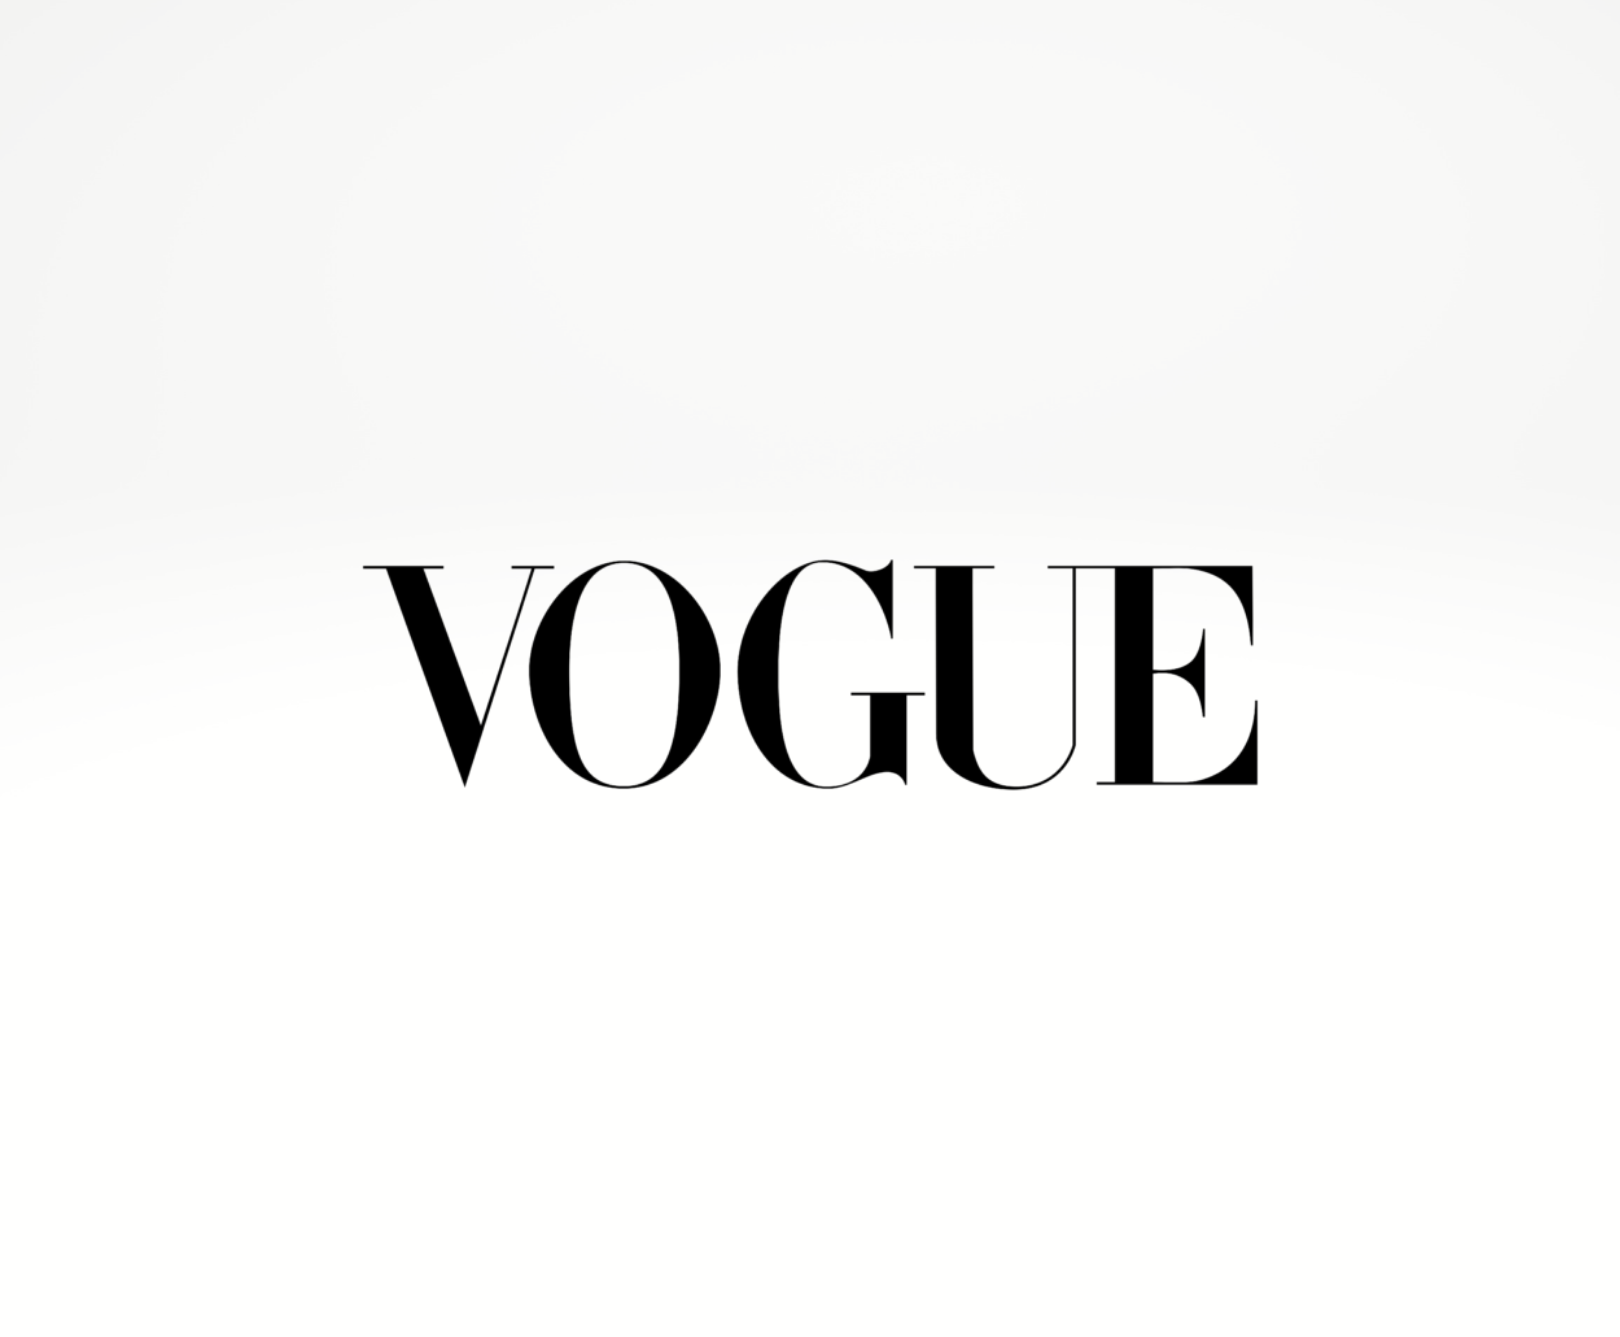 VOGUE logo - NGOLD Gstaad